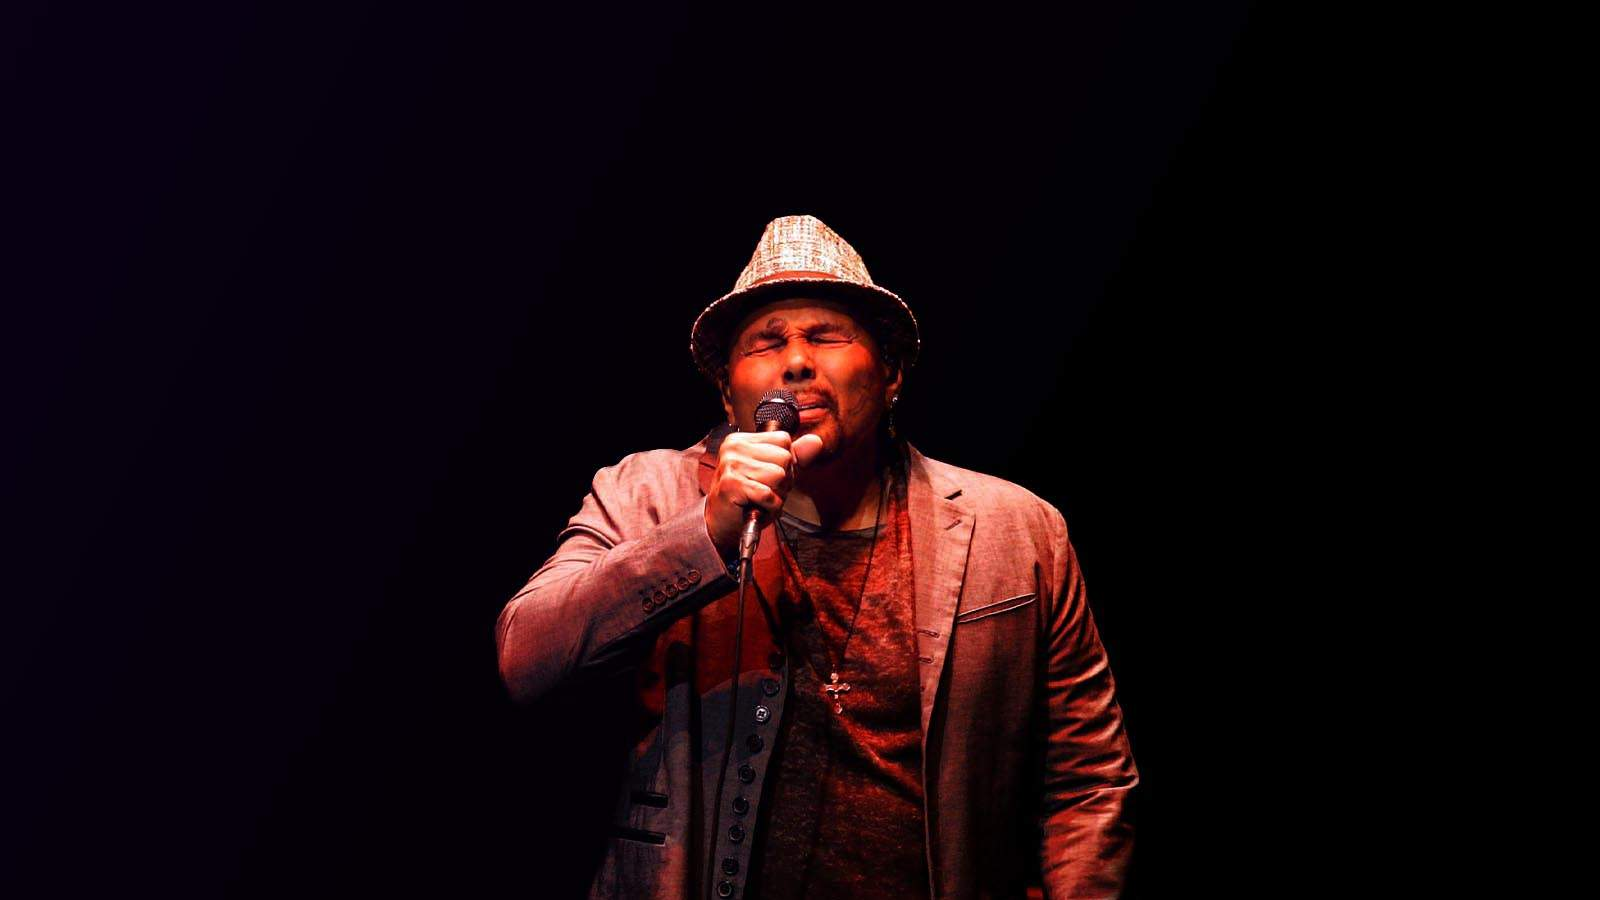 Aaron Neville (Rescheduled from 3/14/2020, 9/10/2020, 9/11/2020)